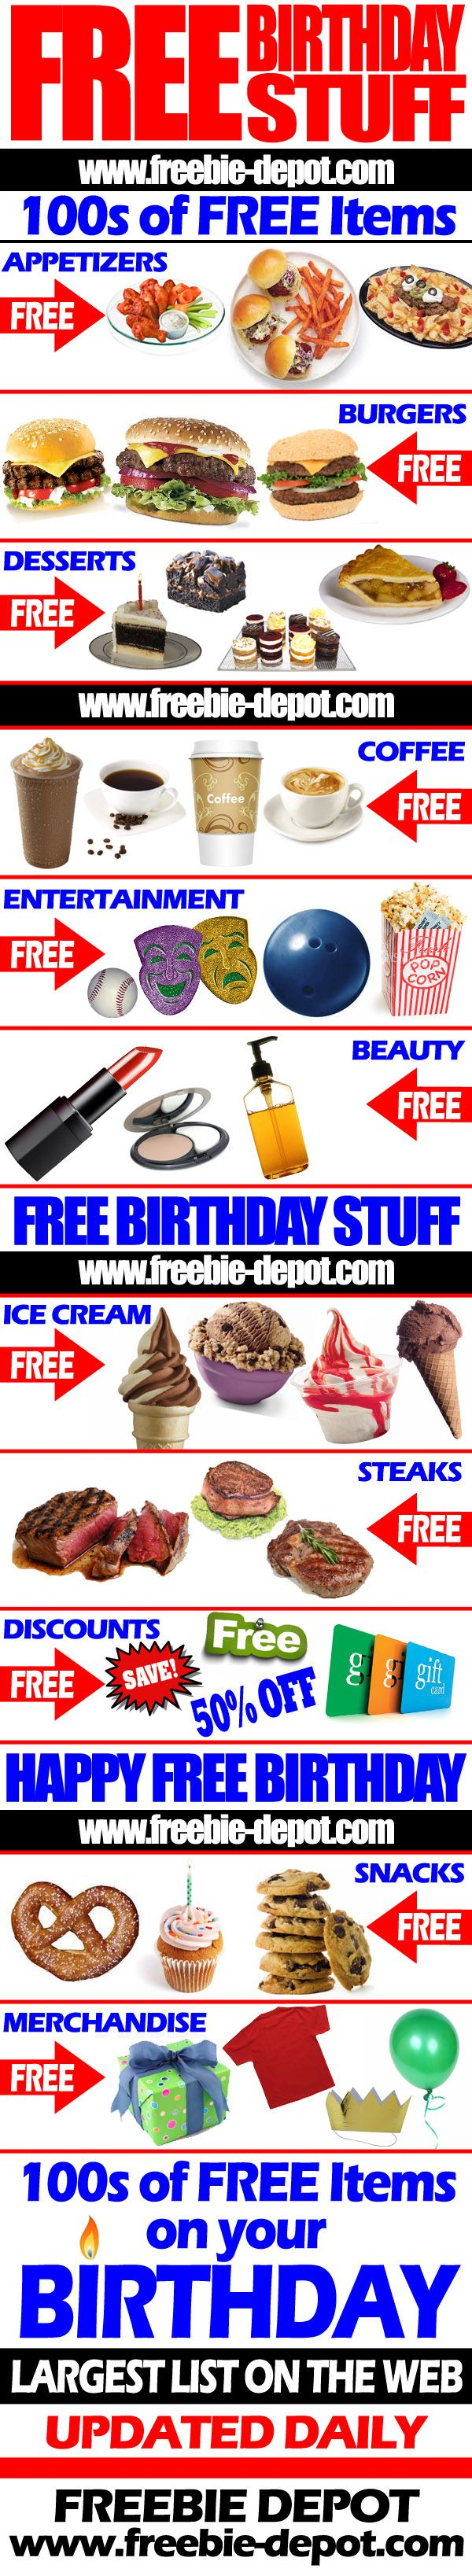 Free stuff is good check it out!